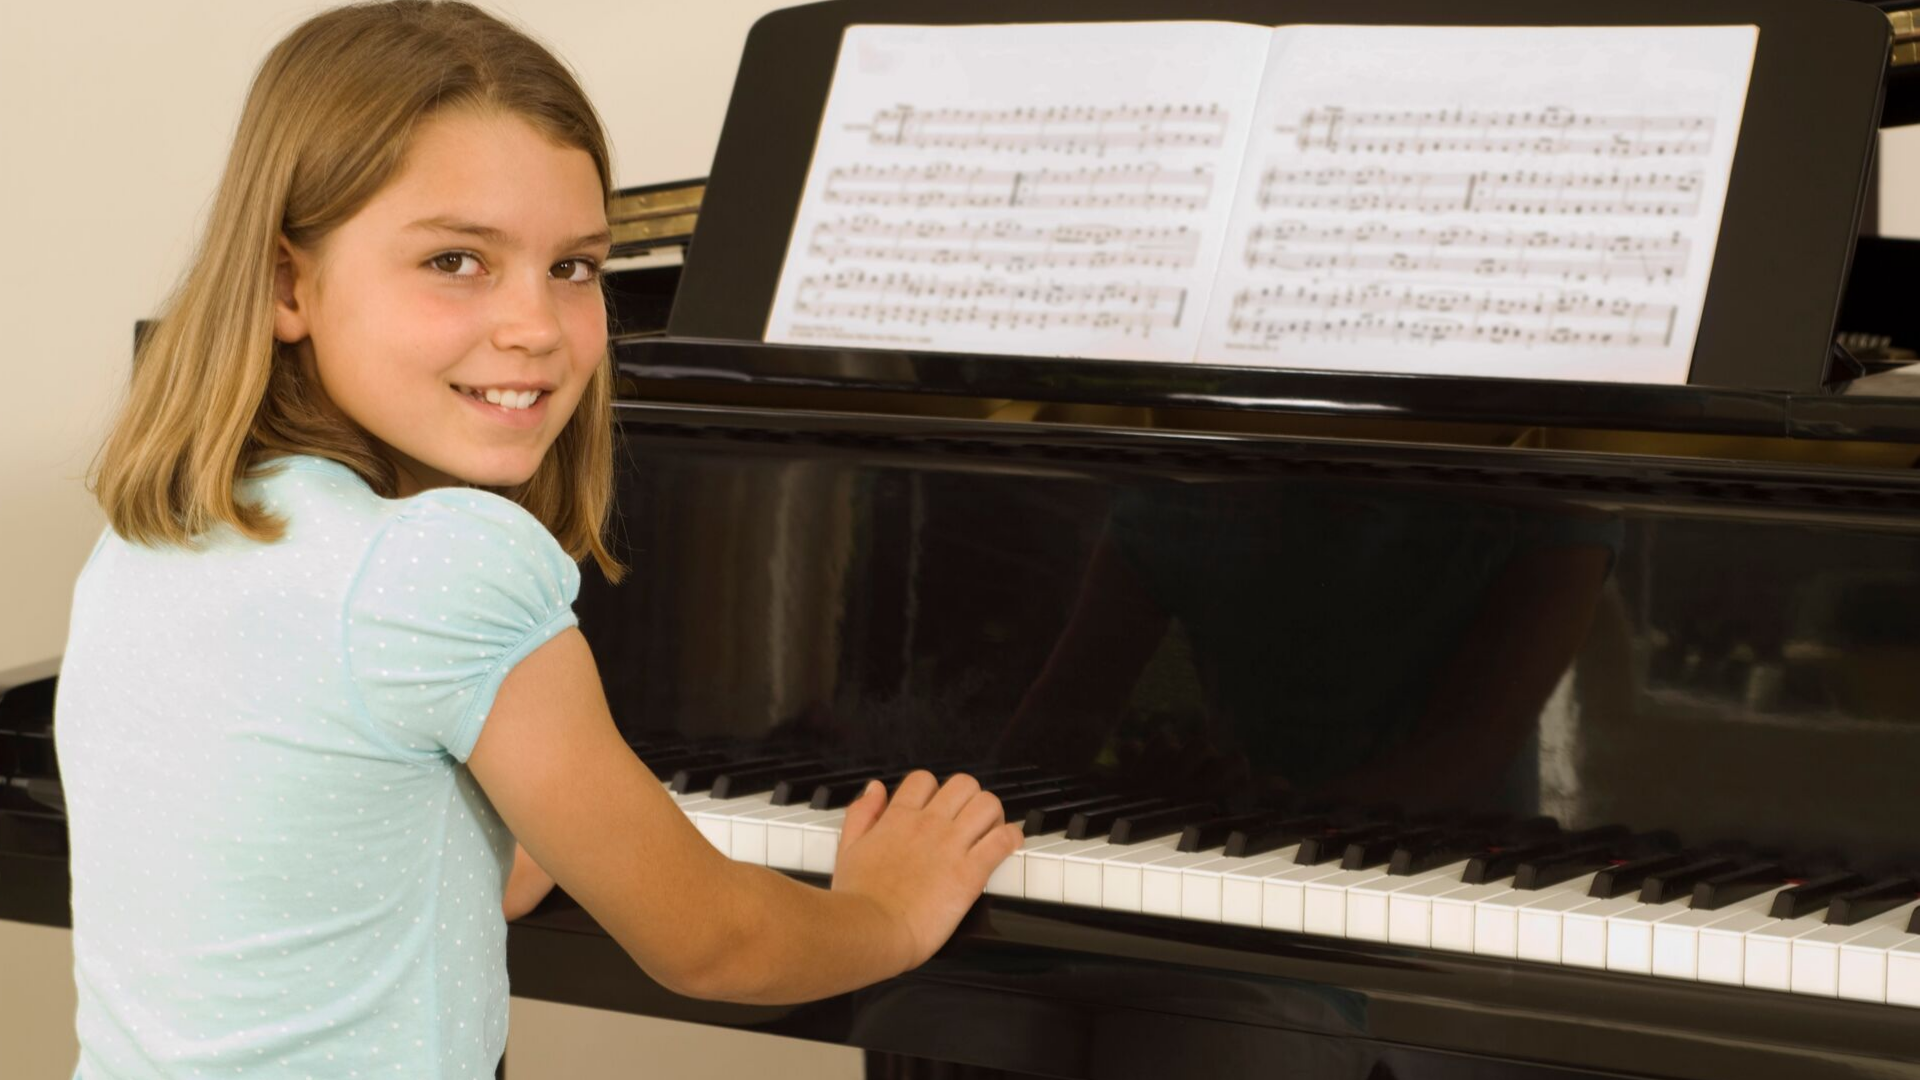 The Gilmore Receives Four-Year Grant for $891,000 for Music Education & Family-Friendly Programming